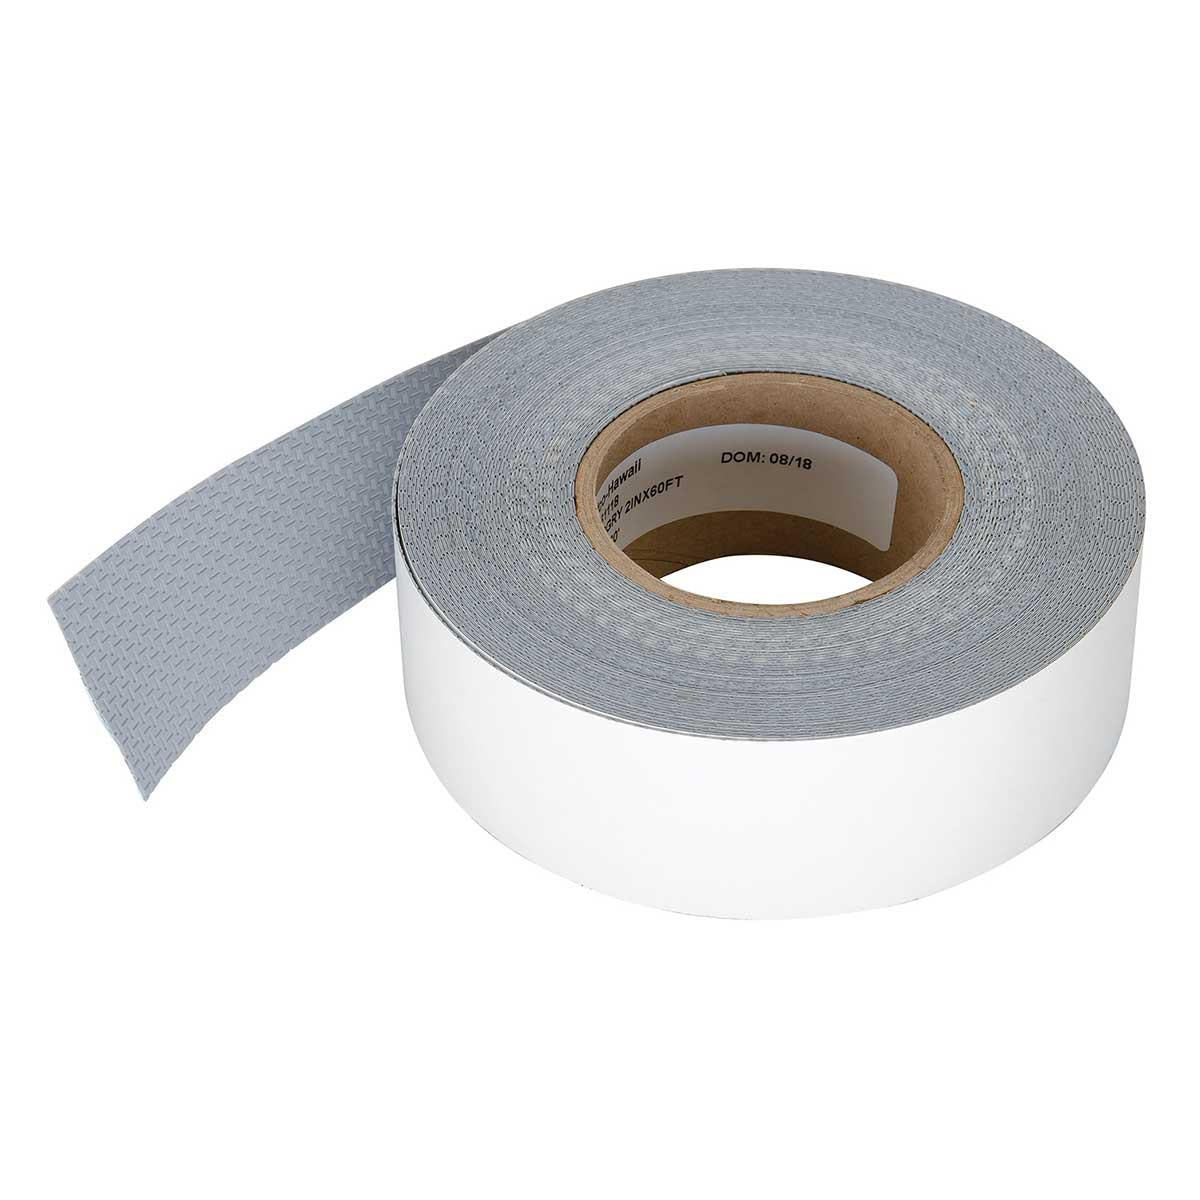 Harken Marine Grip Tape - Grey 2 Inch Wide by the Meter